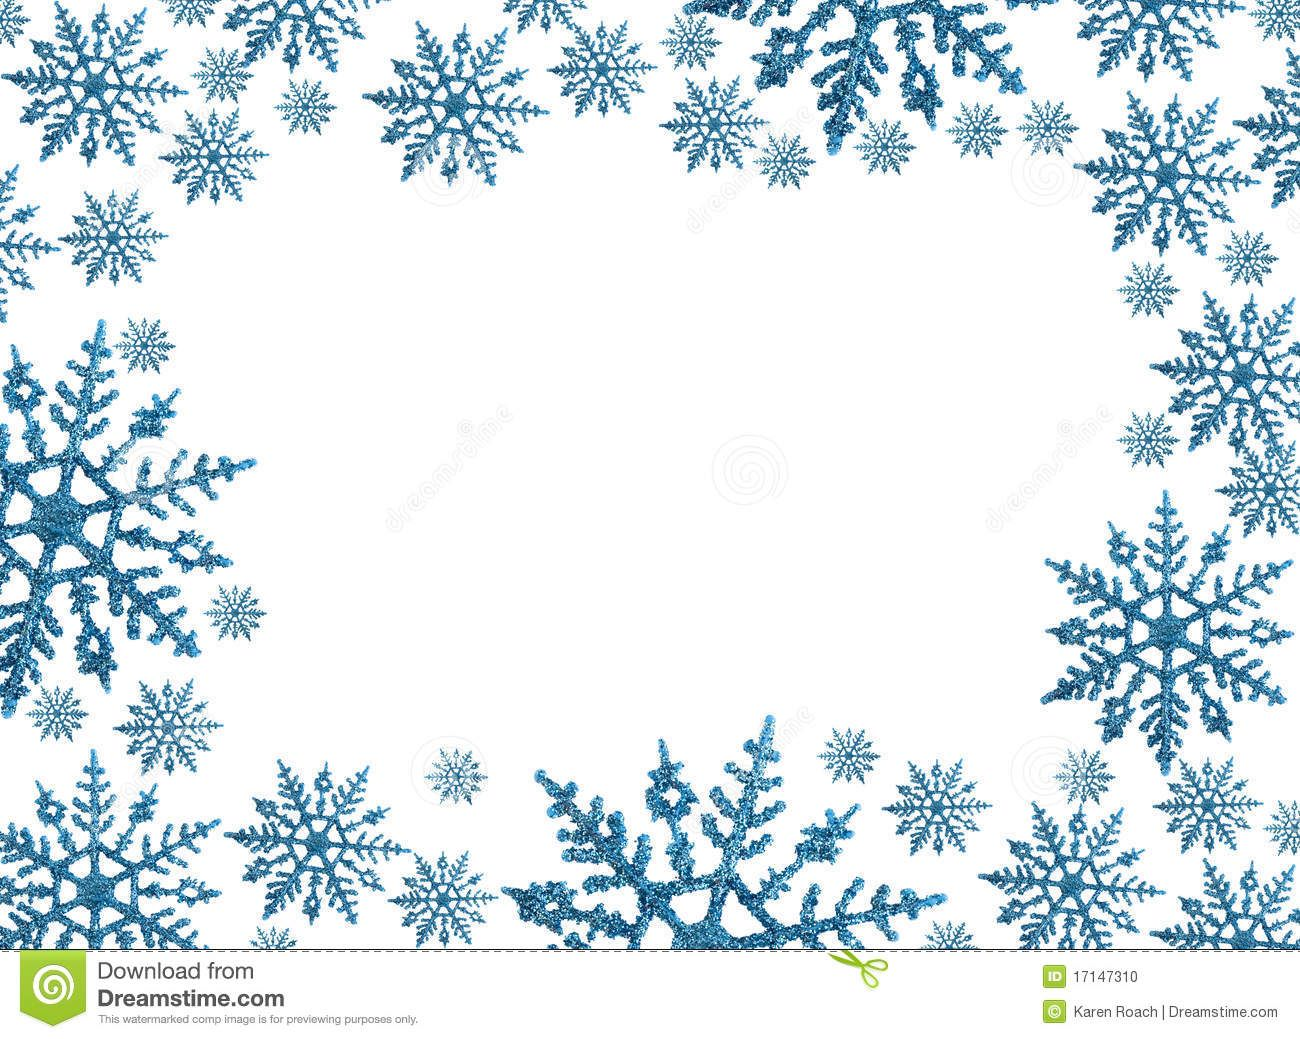 Snowflake Border Stock Photo.